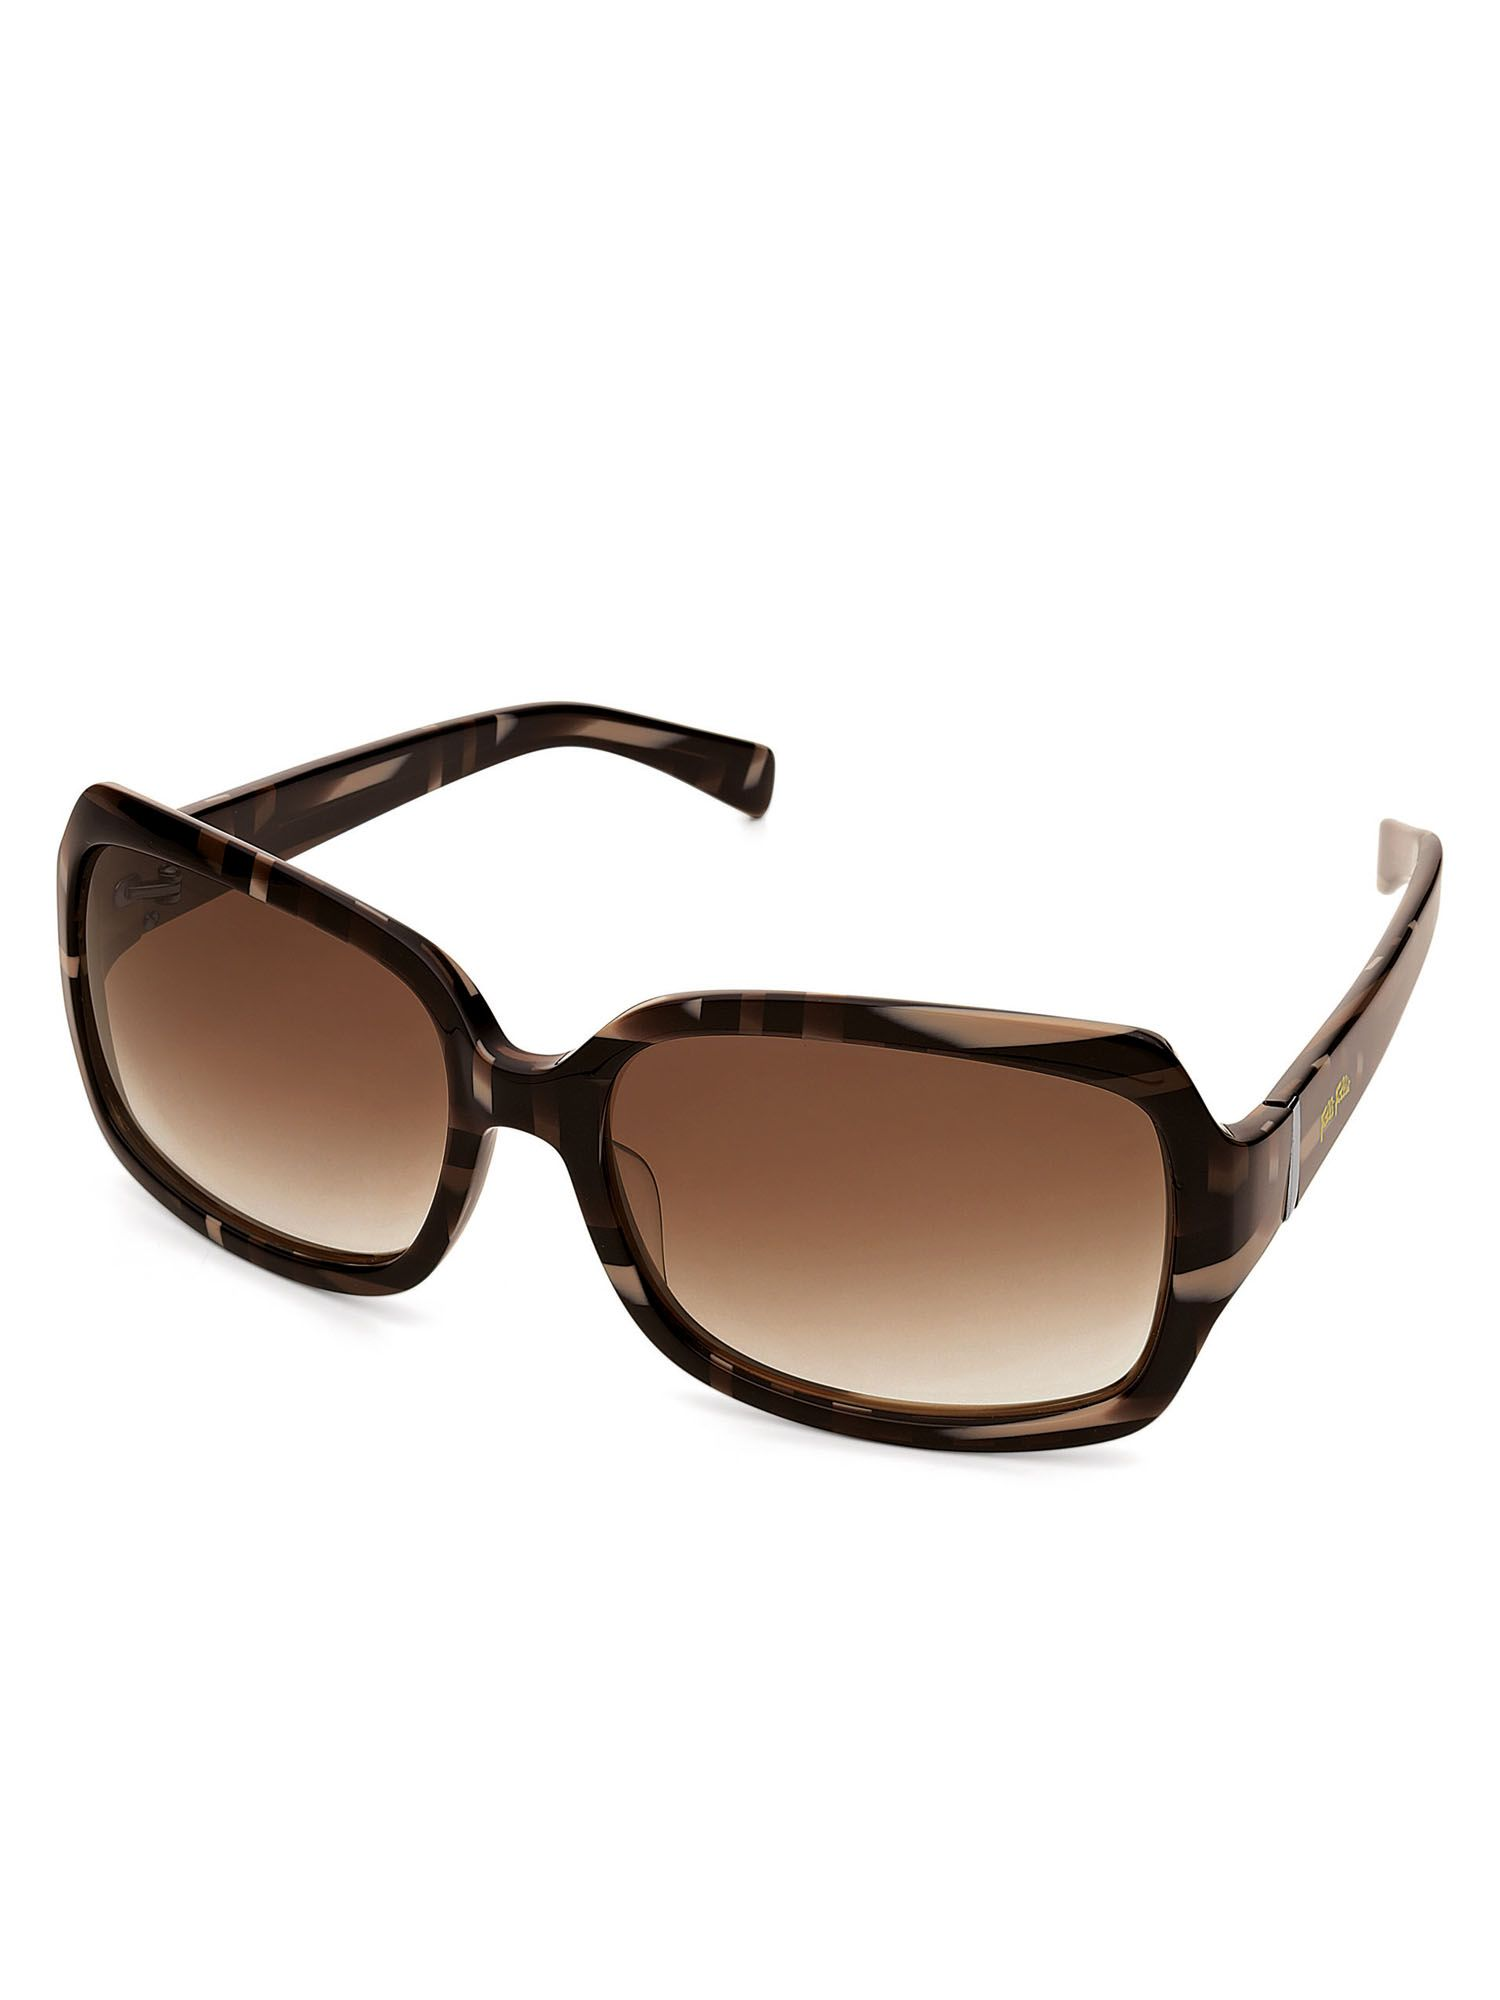 Ladies Brown Rectangle Sunglasses